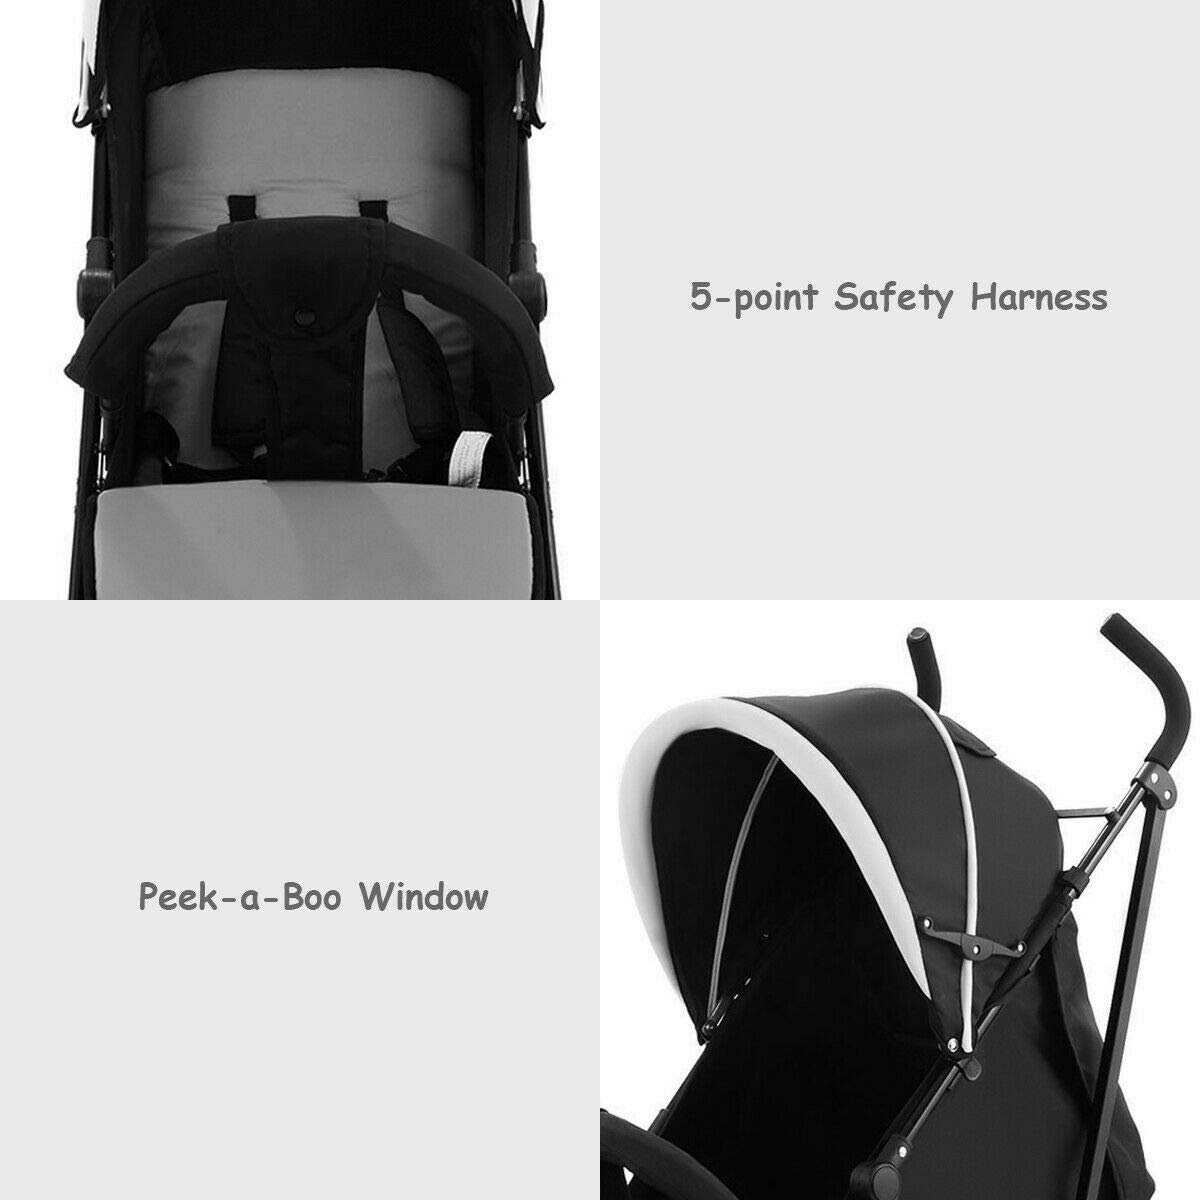 Kids Jogger Foldable Baby Stroller Buggy Travel Infant Pushchair Lightweight Eco-Friendly Material by Eosphorus BS (Image #7)